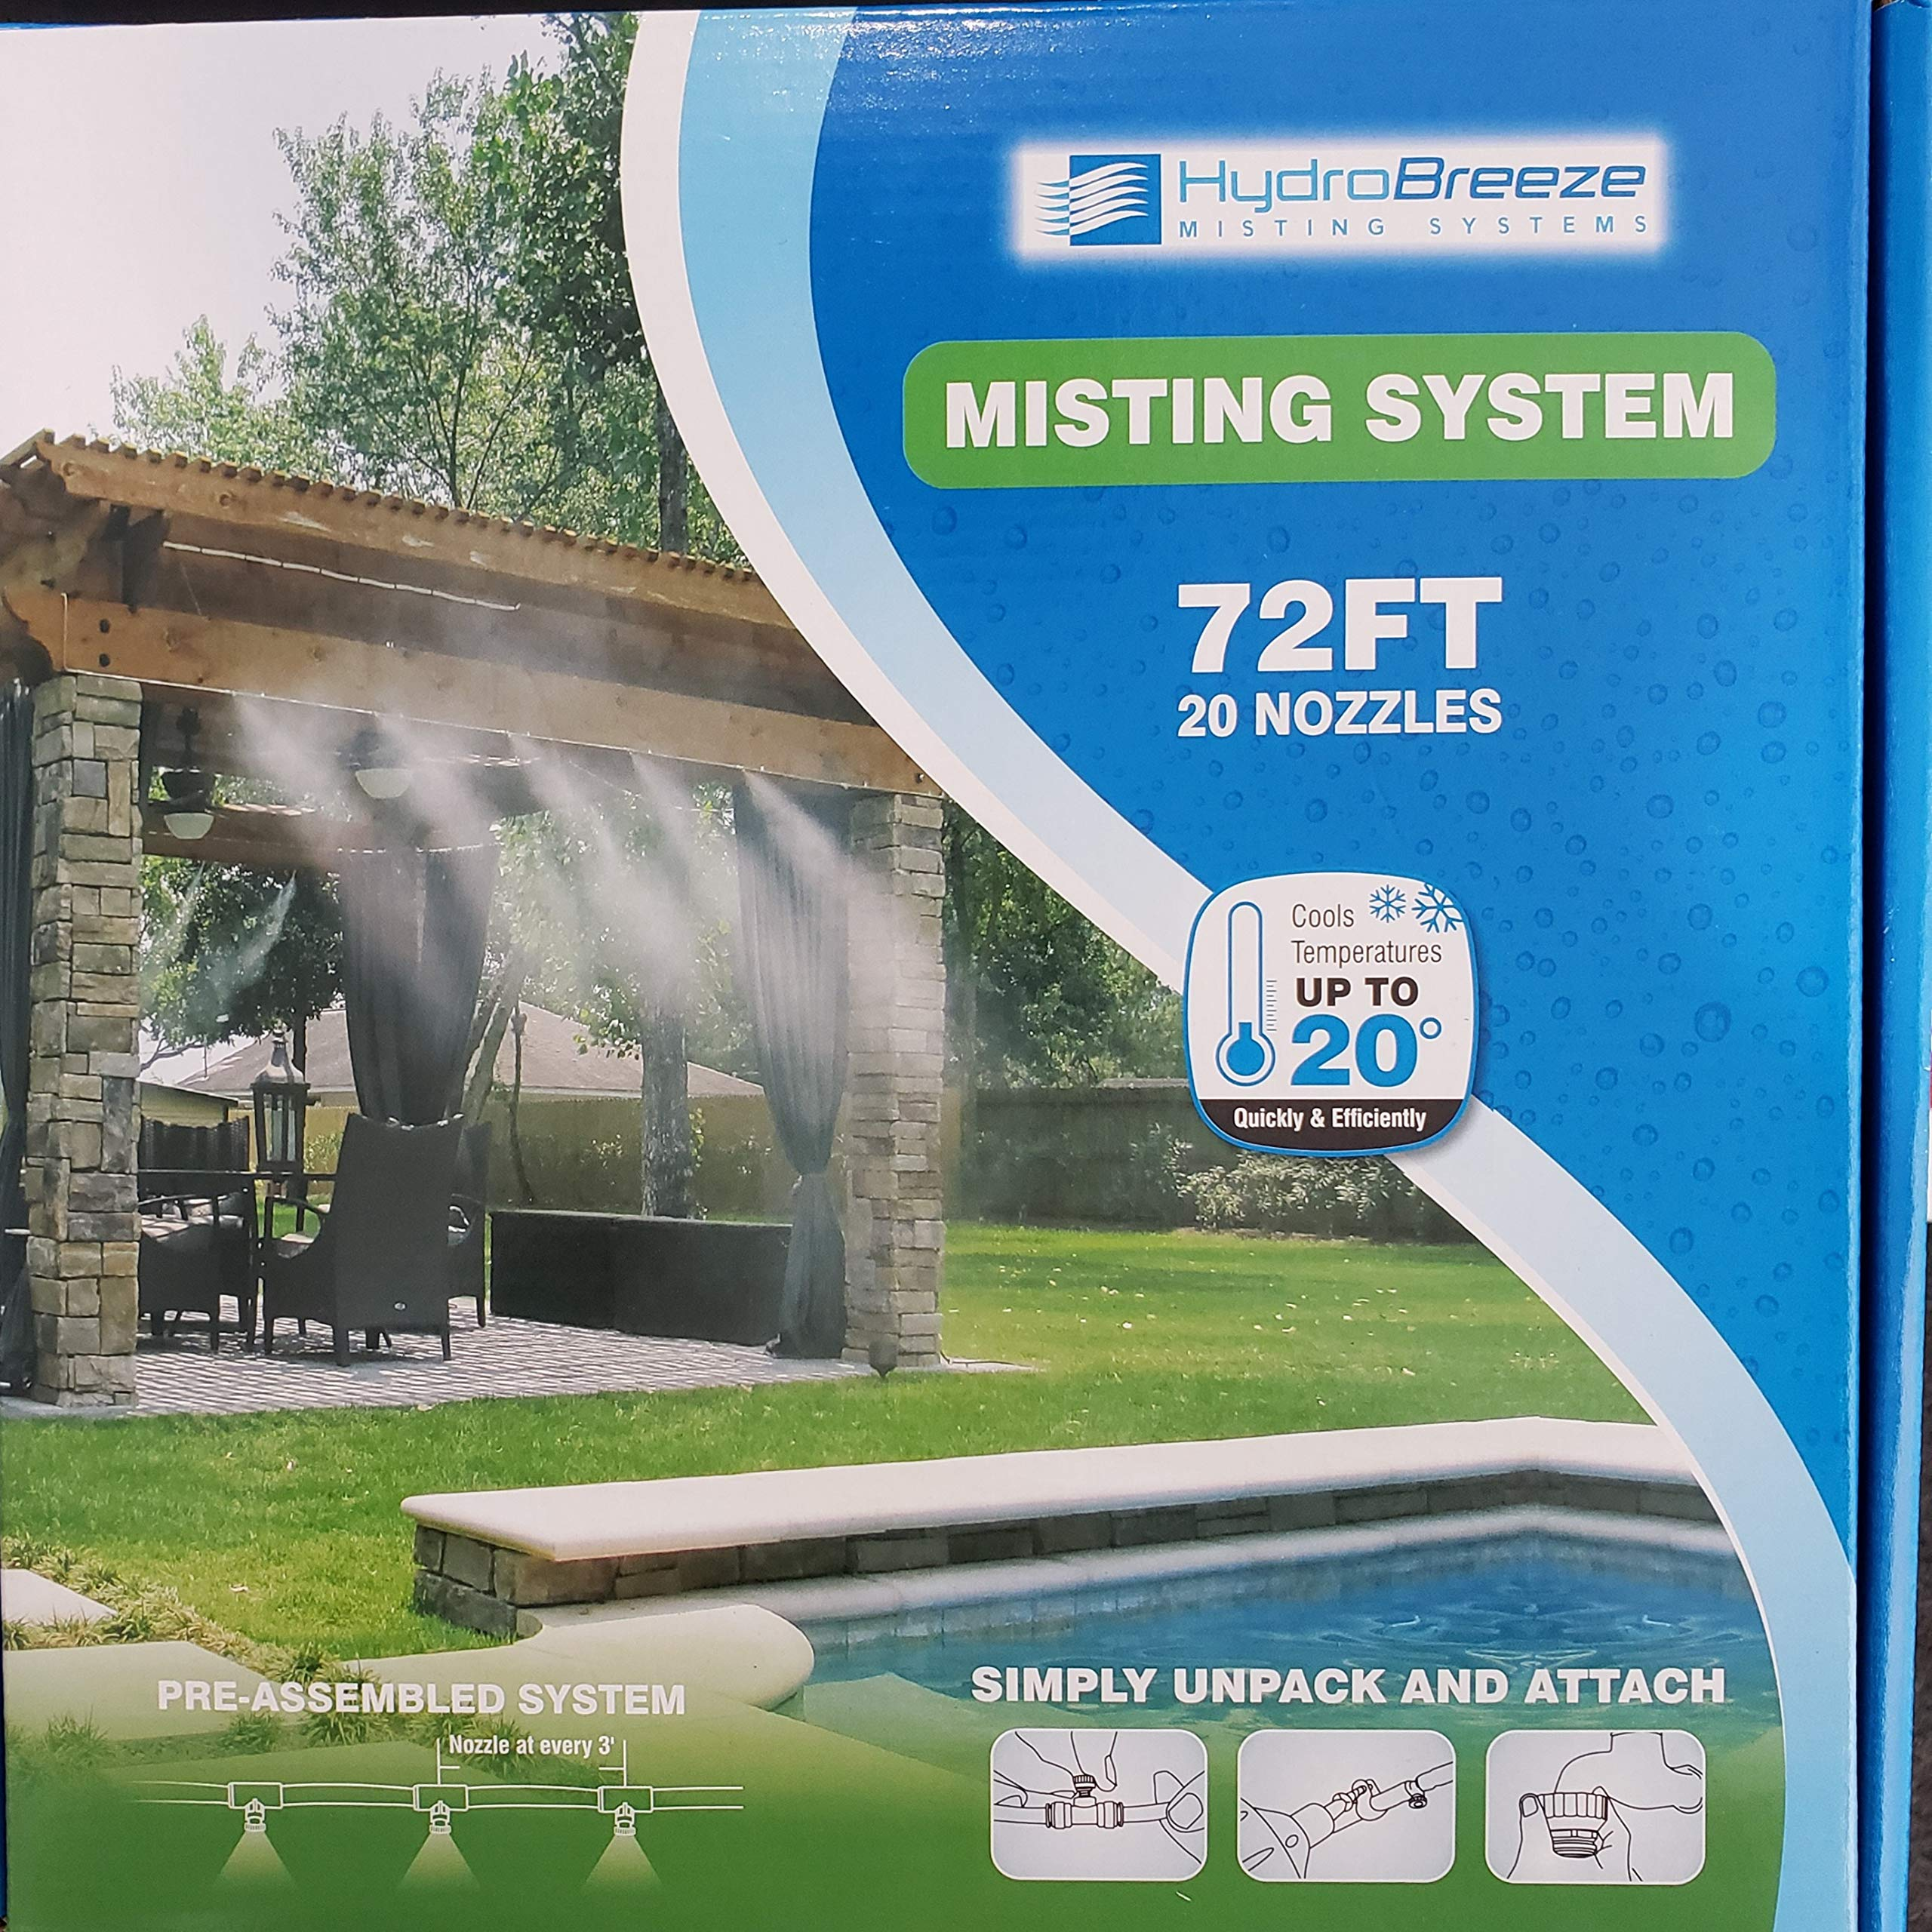 Hydrobreeze Pre-Assembled Misting System 72 Feet 1/4 in Beige Tubing - 20 Nozzles by Hydrobreeze